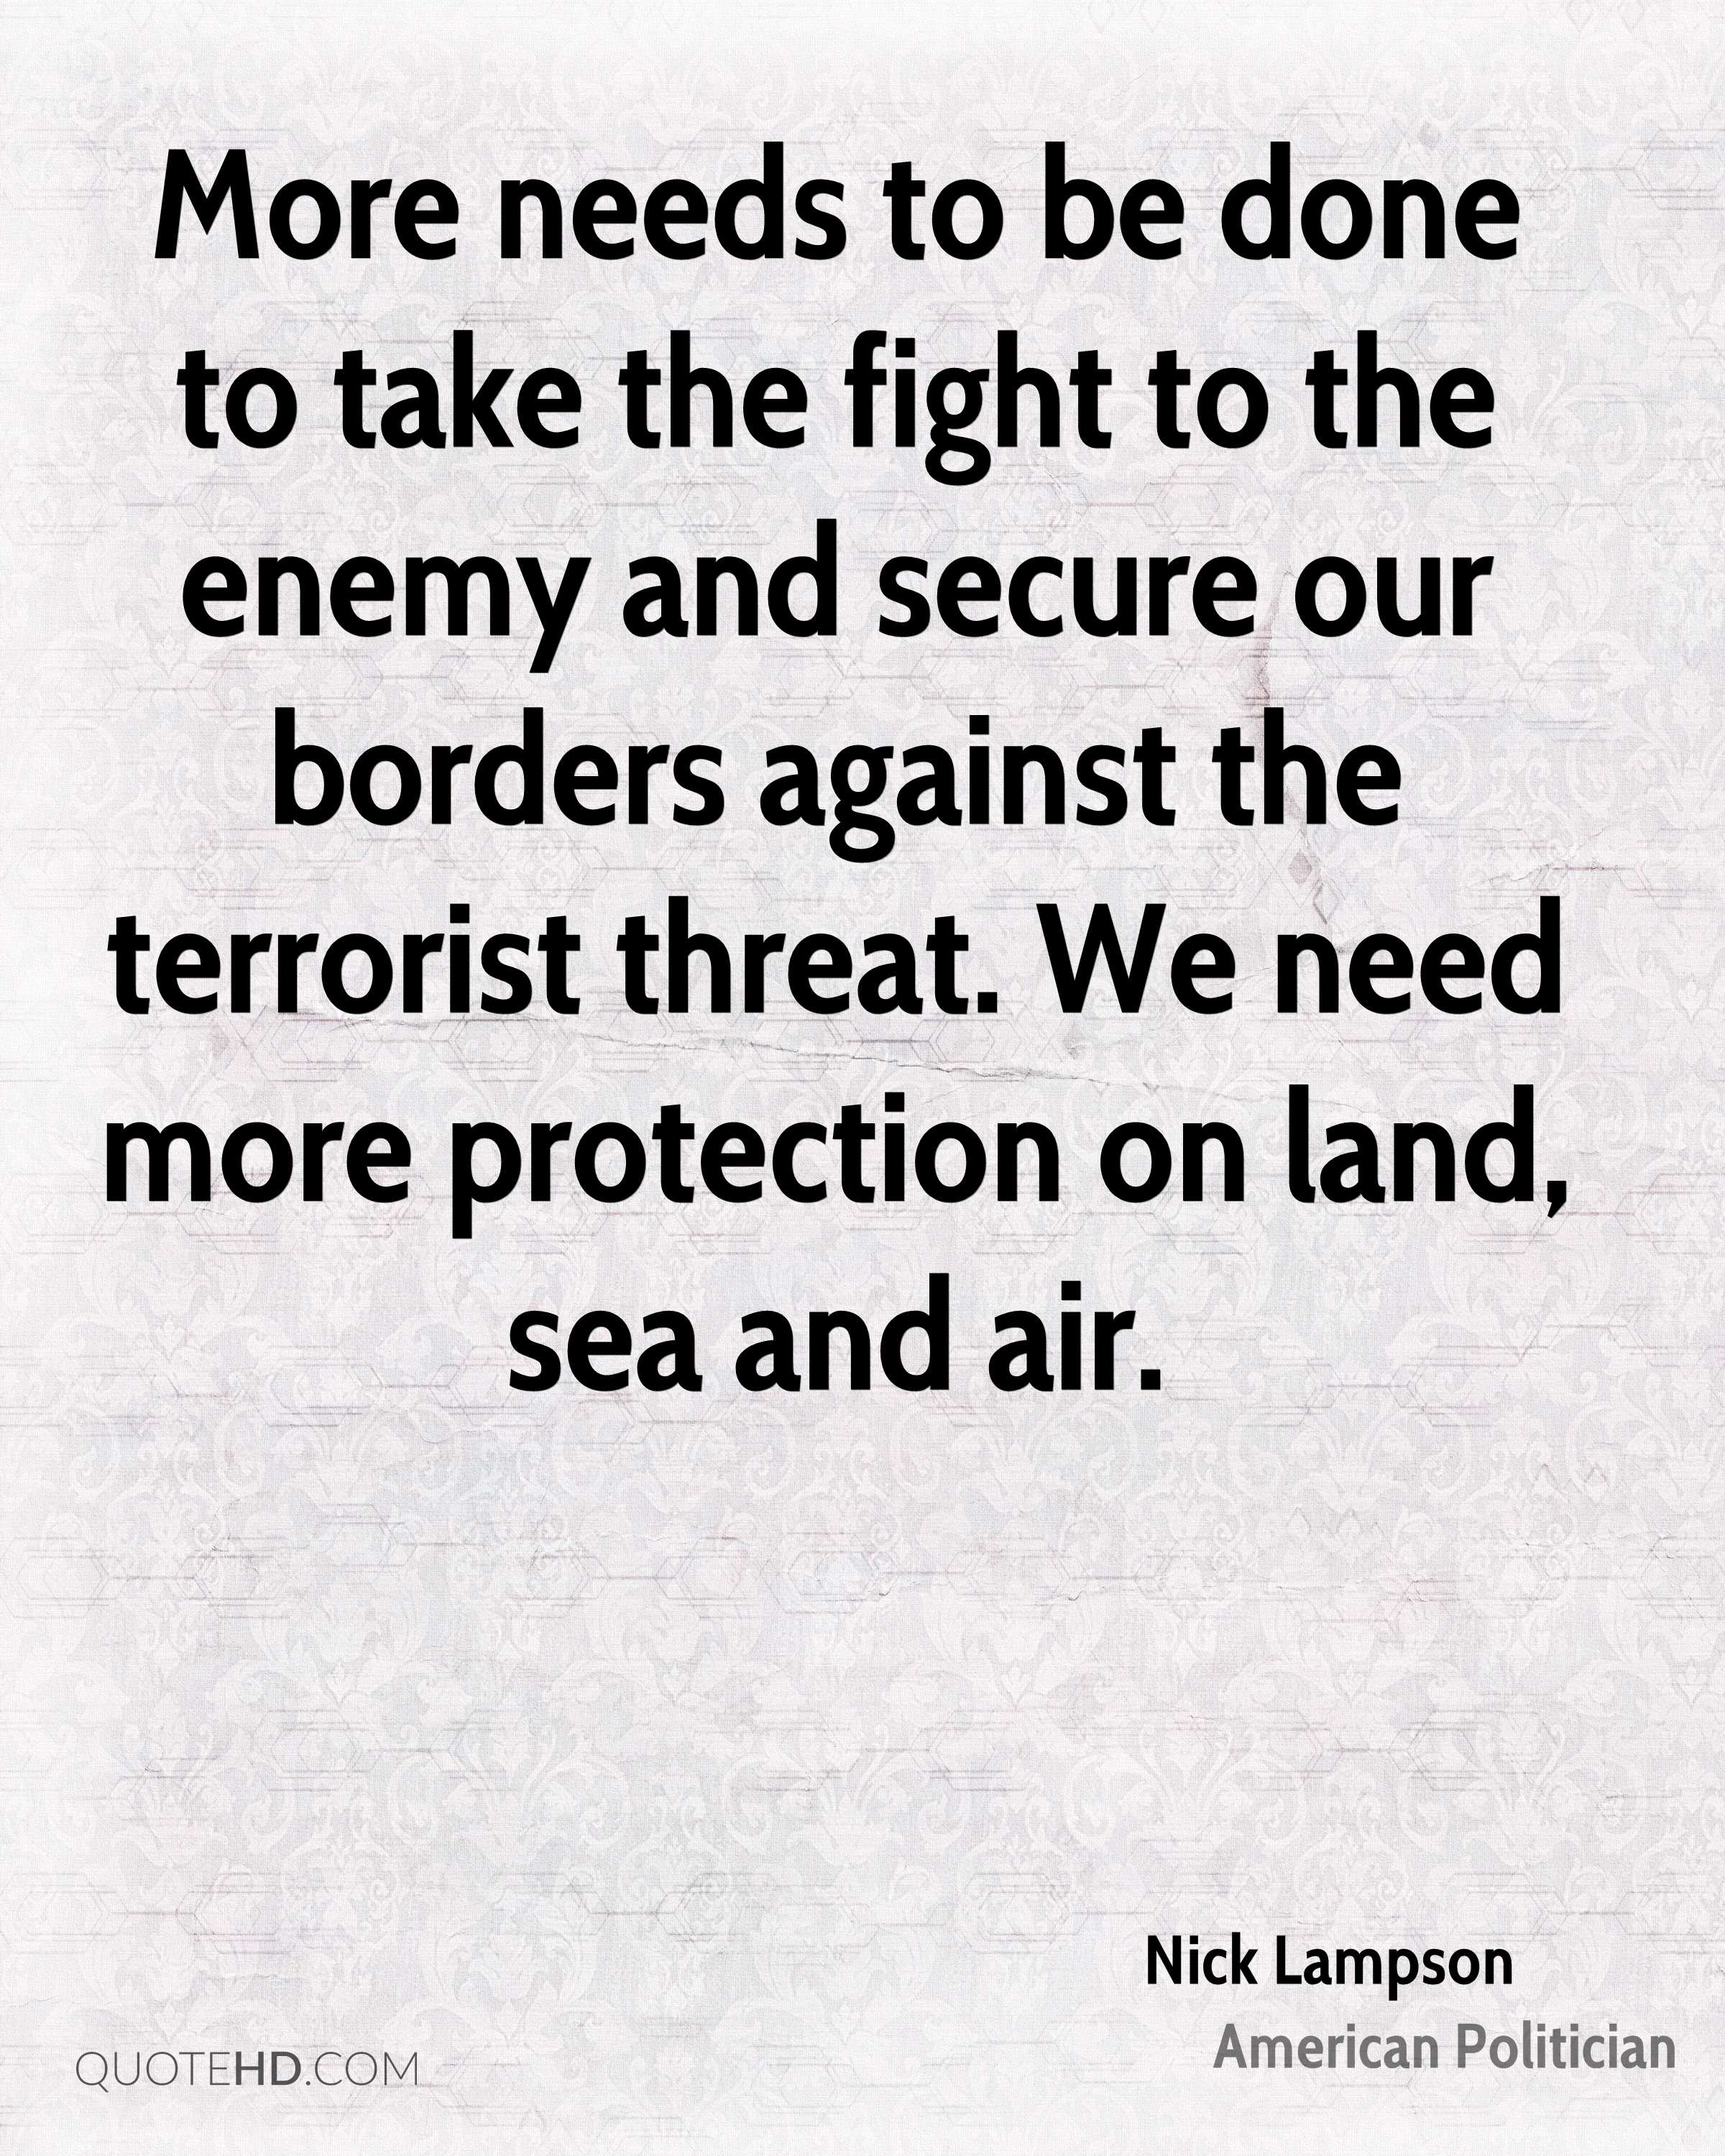 More needs to be done to take the fight to the enemy and secure our borders against the terrorist threat. We need more protection on land, sea and air.